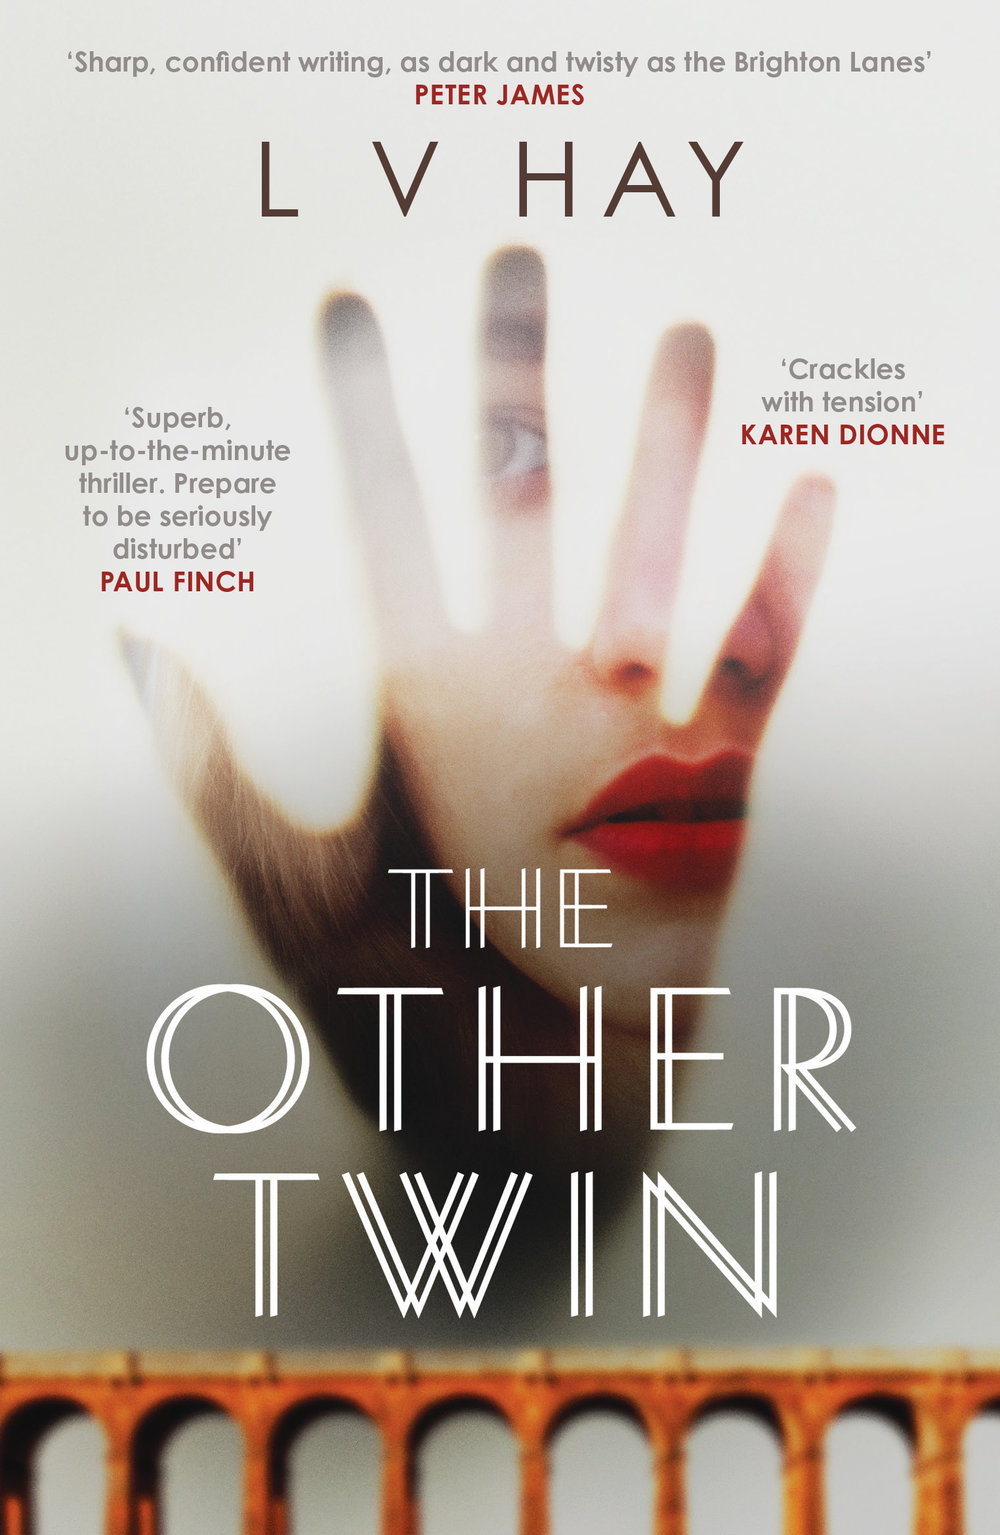 THE OTHER TWIN final cover.jpg